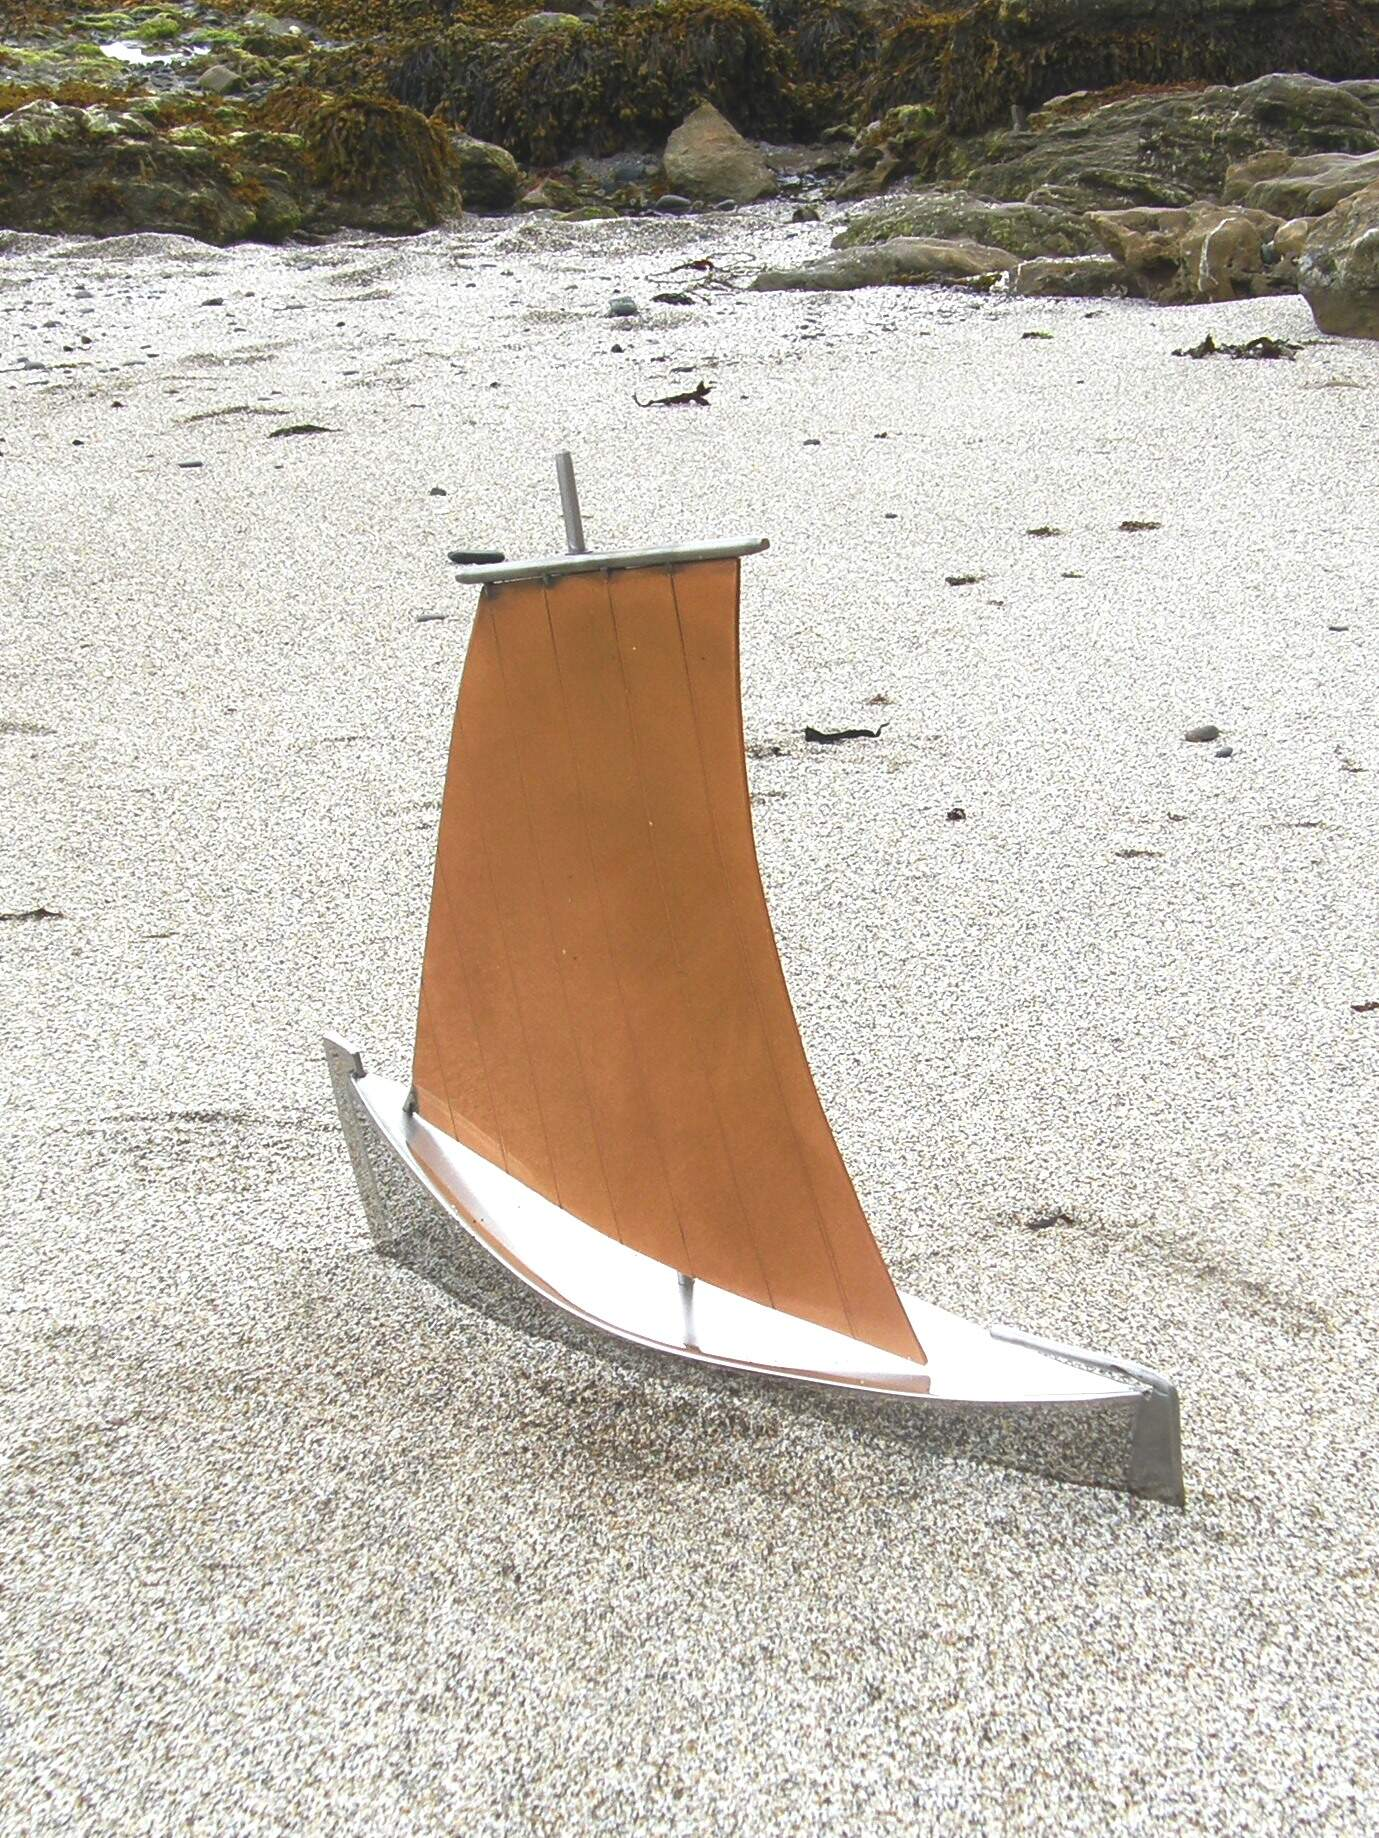 Breton Style Sailing Boat port side - Handmade in Stainless Steel & Brushed Copper